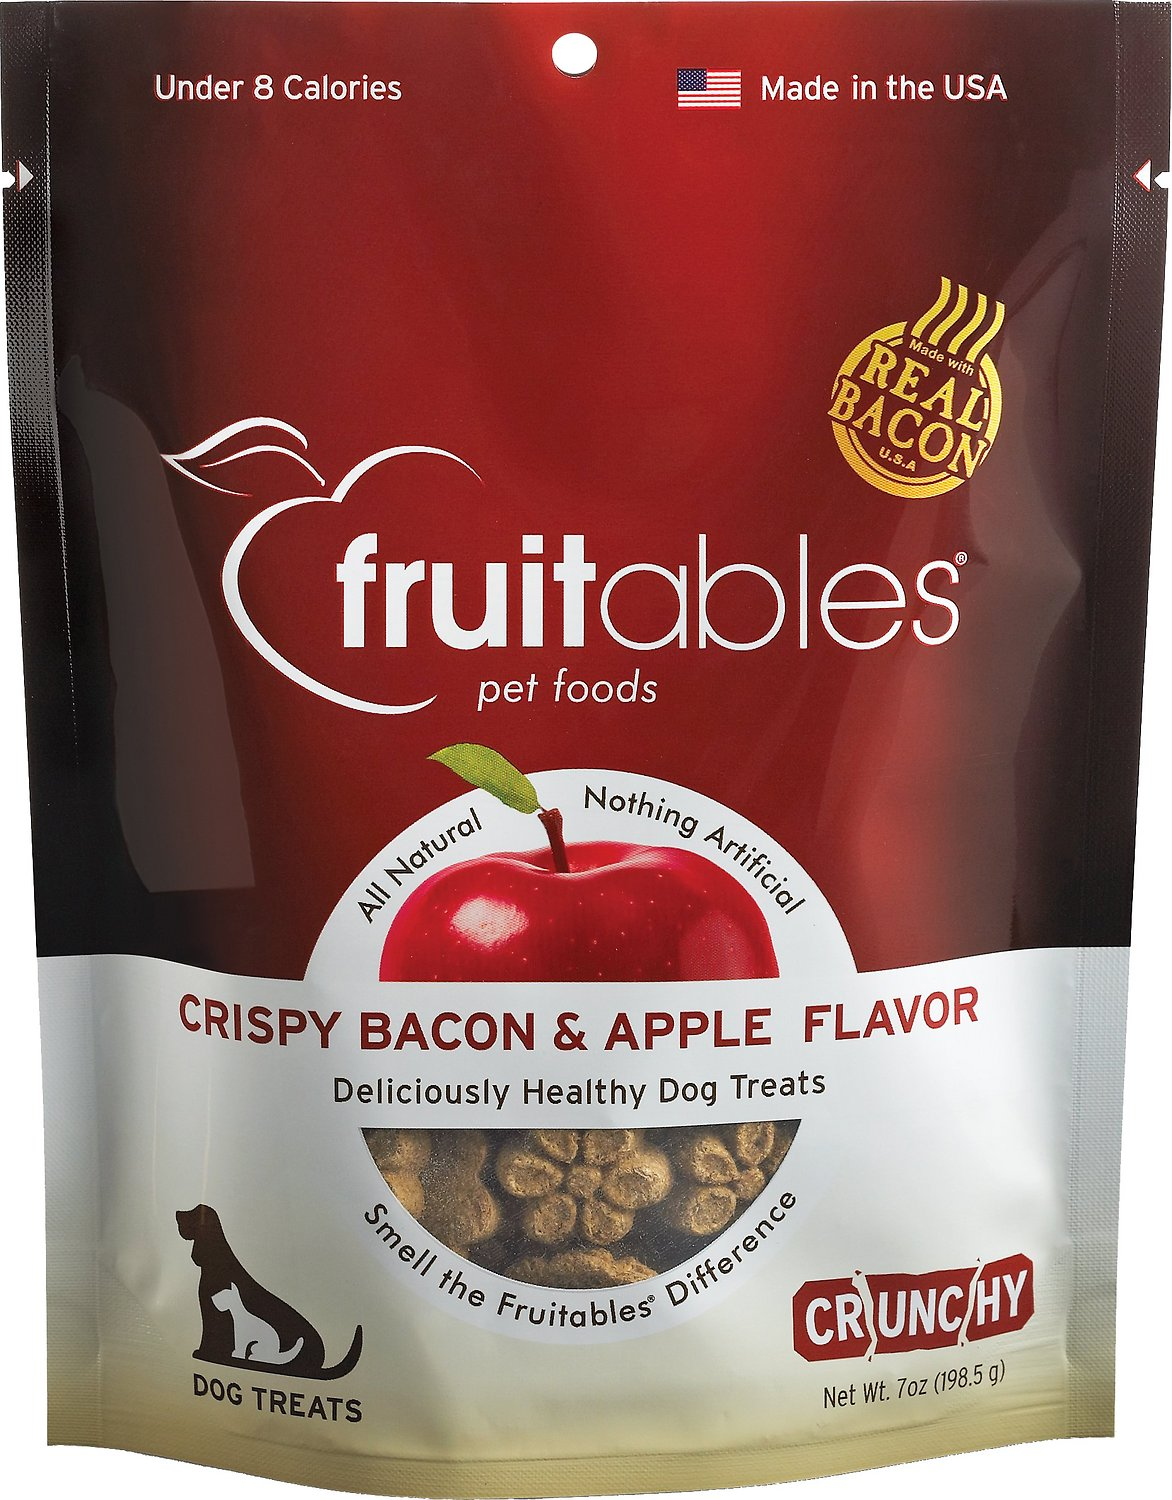 Fruitables Crispy Bacon & Apple Flavor Crunchy Dog Treats, 7-oz bag Image